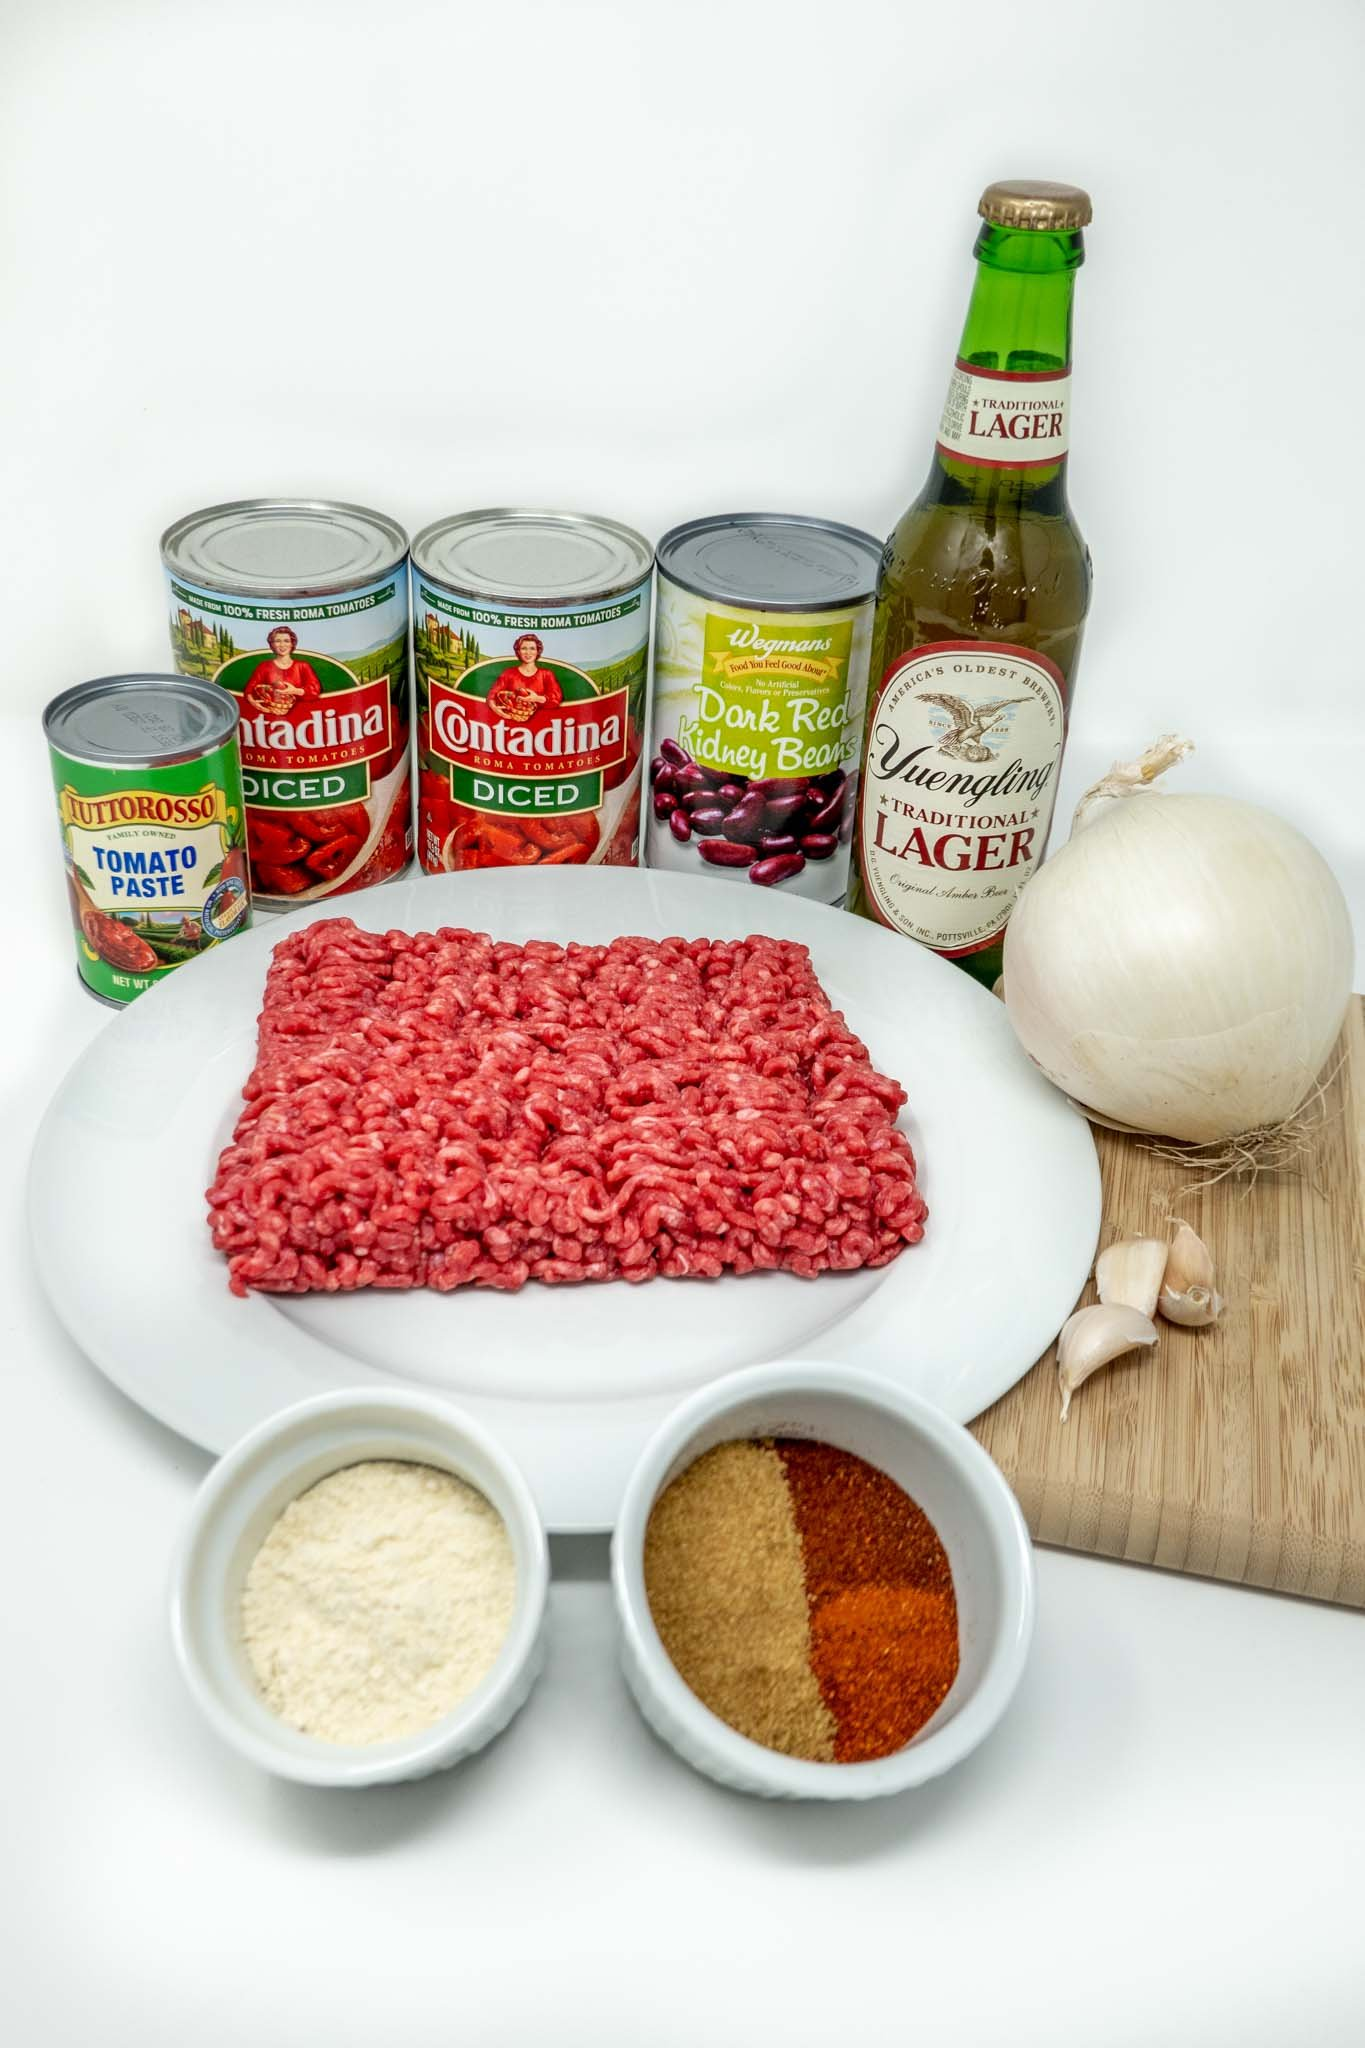 Beef, onion, garlic cloves, spices, masa harina, beer bottle, and cans of tomatoes, beans, and tomato paste